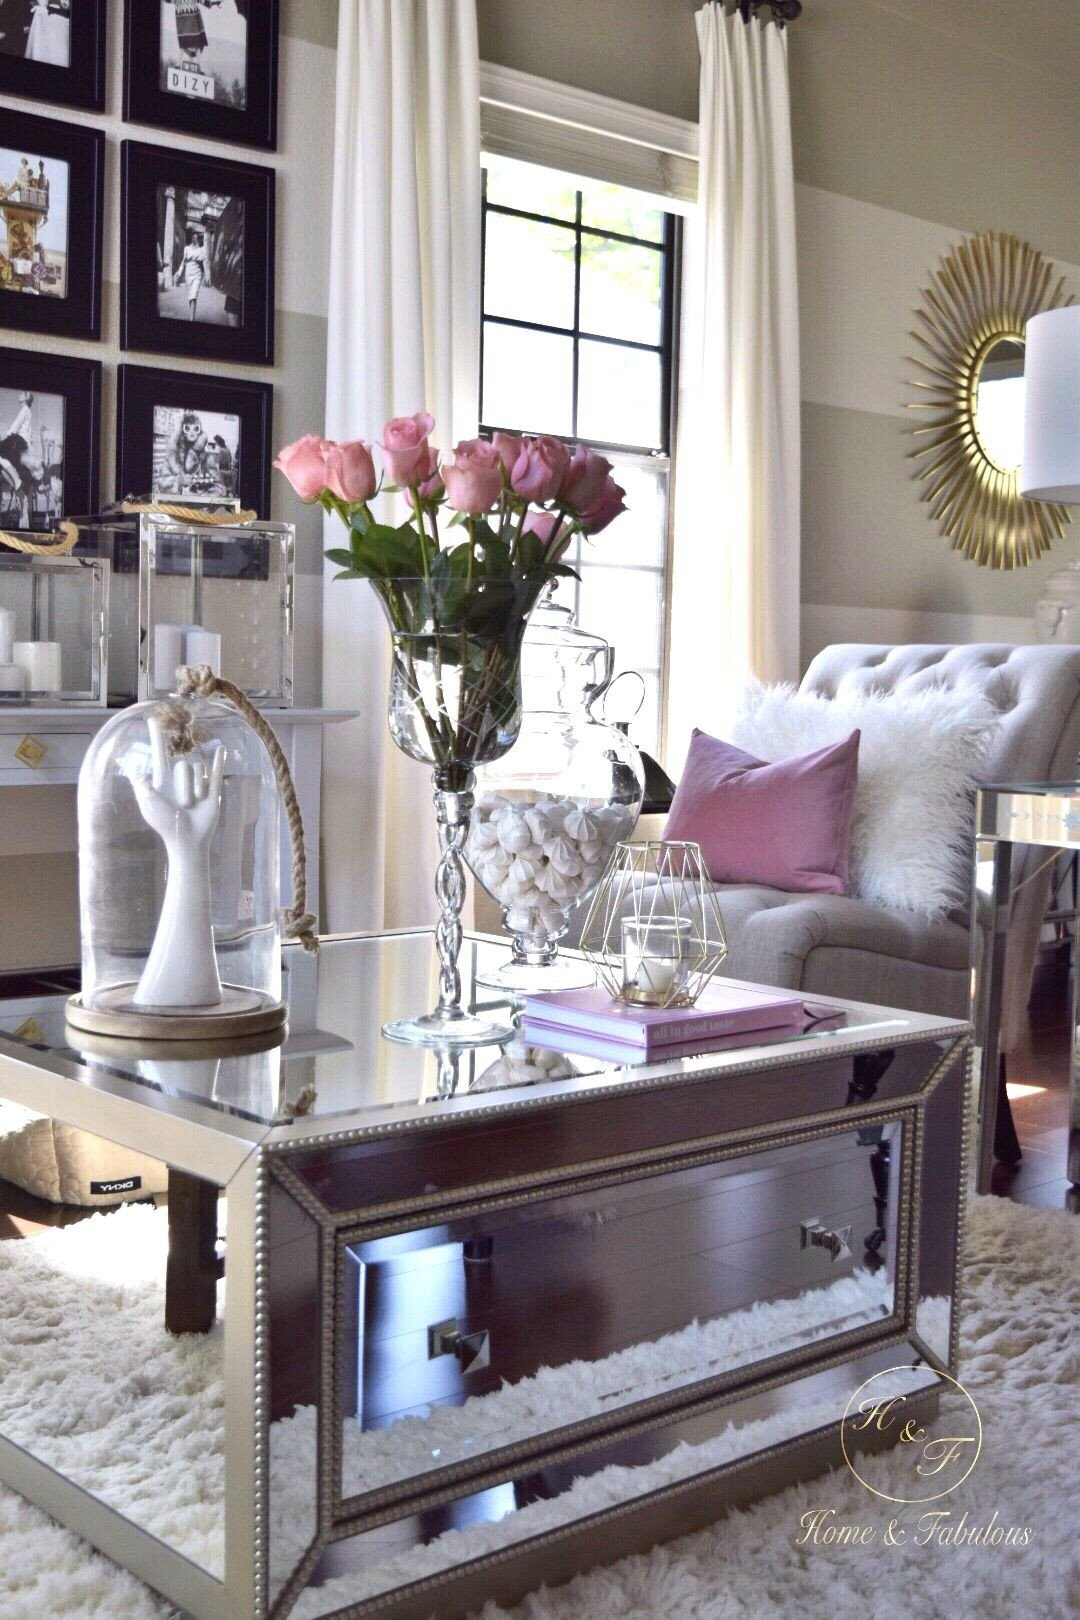 Living Room Coffee Table Decor Lovely It S Amazing that I Can Find A Beautiful Coffee Table Like